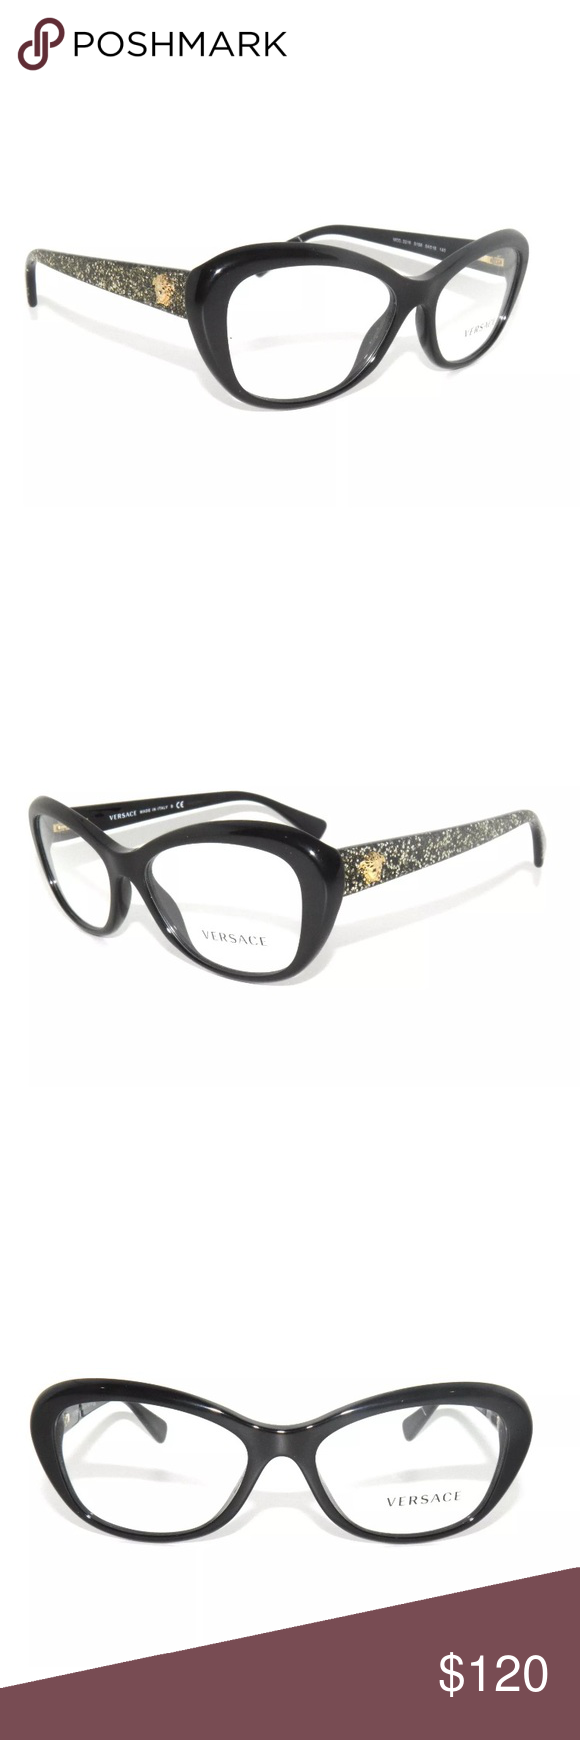 e38b0f1969b Versace Black and Glitter Eyeglasses 3216 New. Authentic. Comes with Versace  case. Versace Accessories Glasses